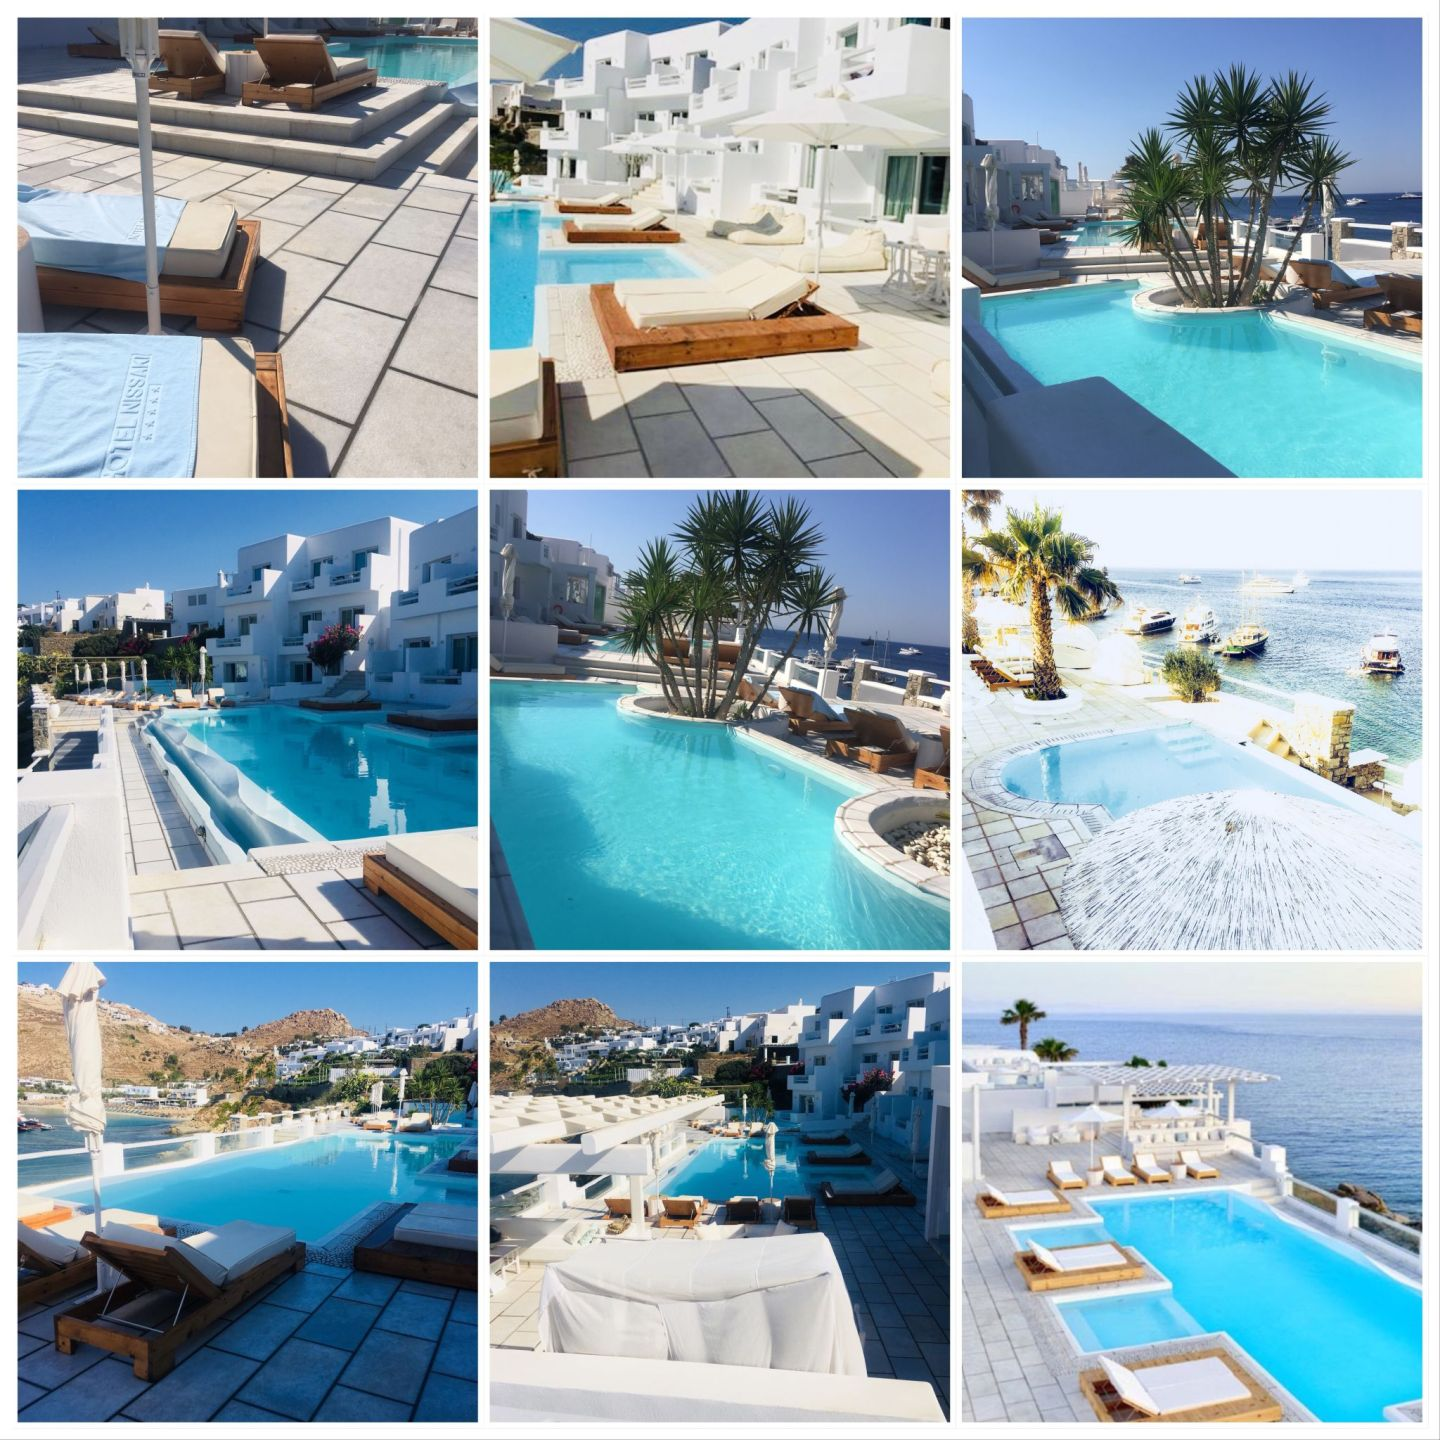 The Nissaki Boutique Hotel in Mykonos